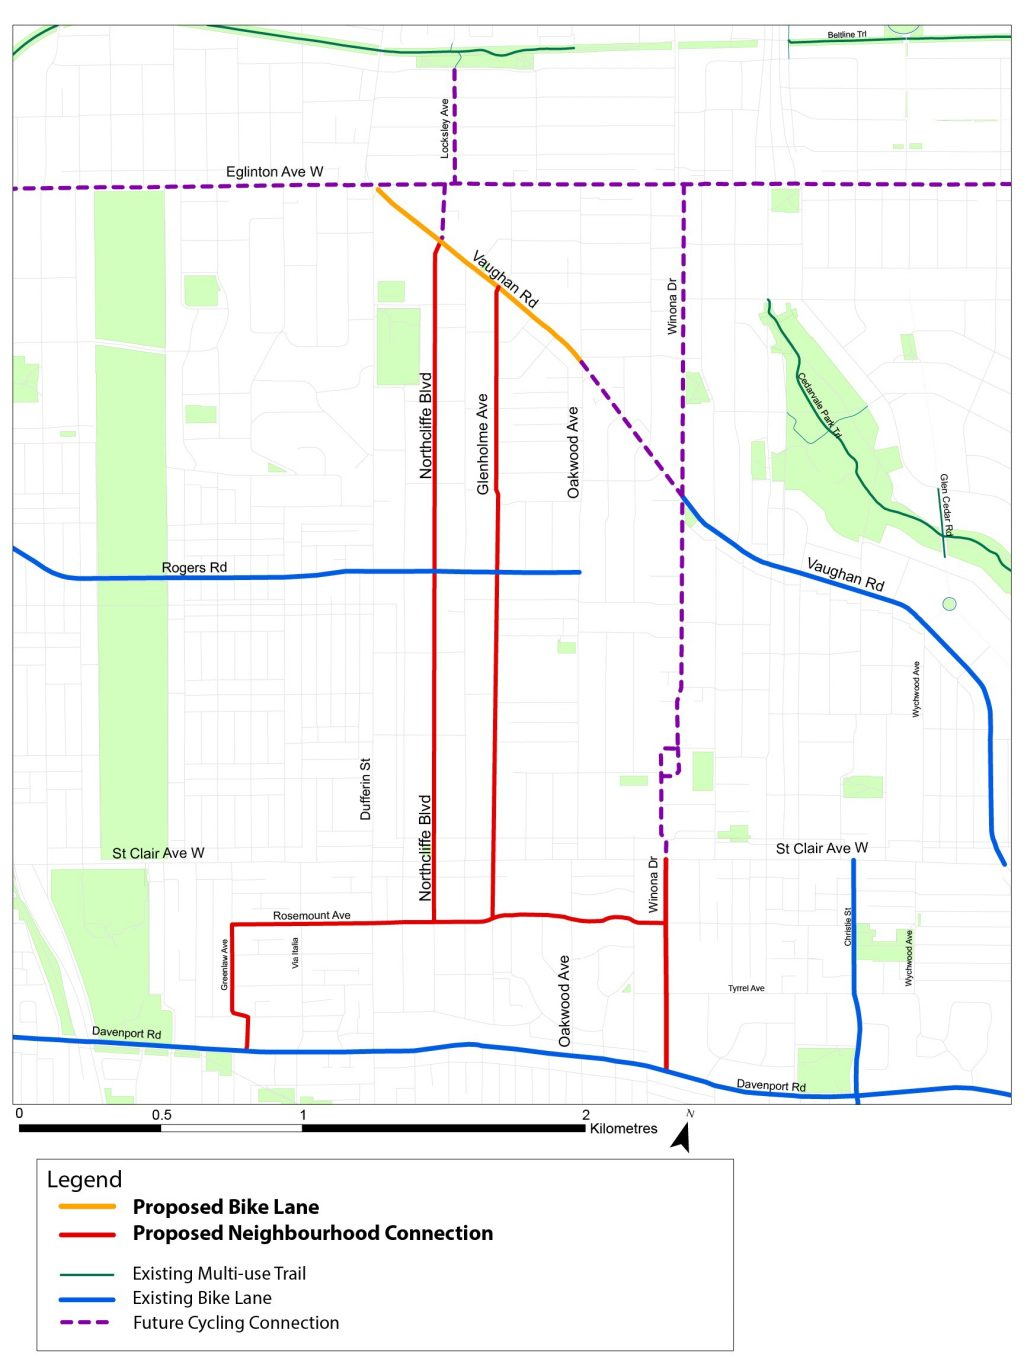 Map of Cycling Network Area, showing proposed bike lanes on Vaughan Rd, proposed bike lanes on Northcliffe Boulevard or Glenholme Avenue, proposed bike lanes on Rosemount Avenue, proposed shared lanes on Greenlaw Avenue and Winona Drive, existing bike lanes on Vaughan Road and Rogers Road, and future cycling connections on Eglinton Avenue West and Winona Drive.